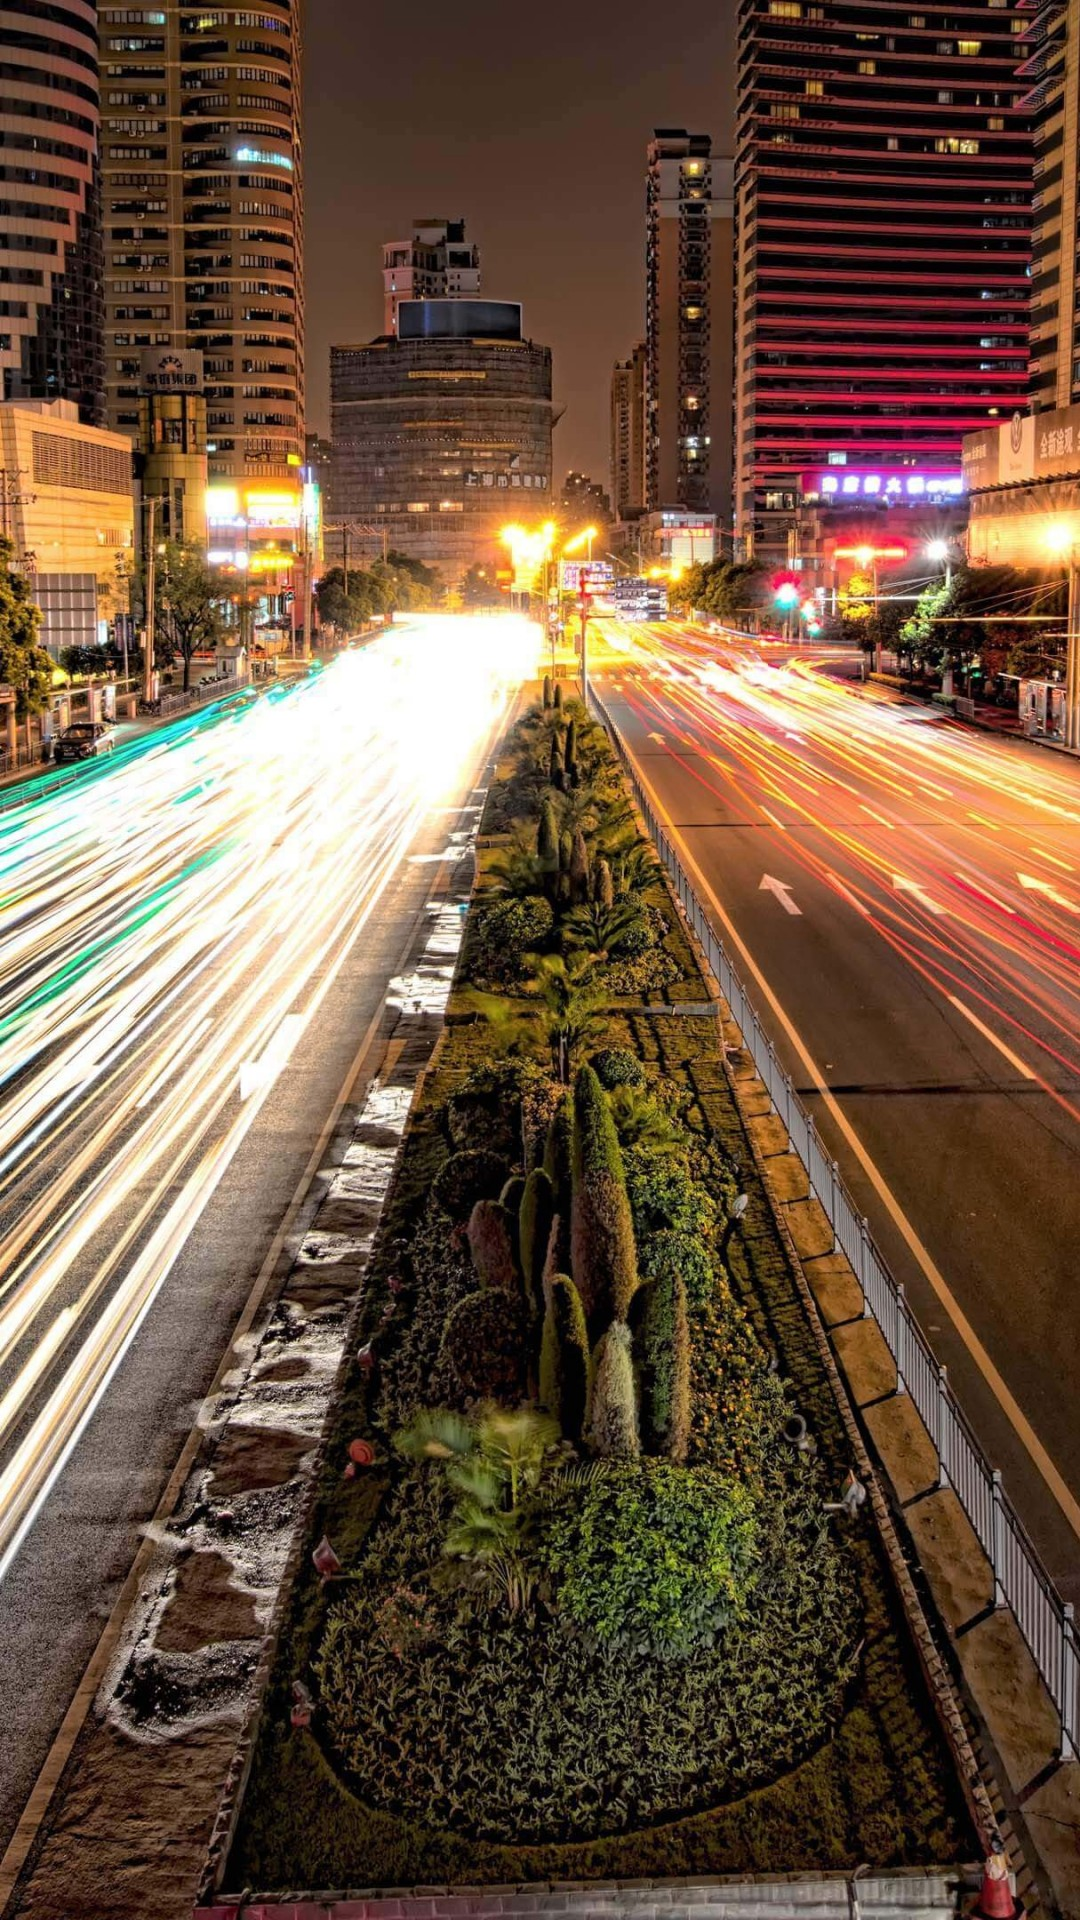 Busy Road in Shanghai at Night Wallpaper for Google Nexus 5